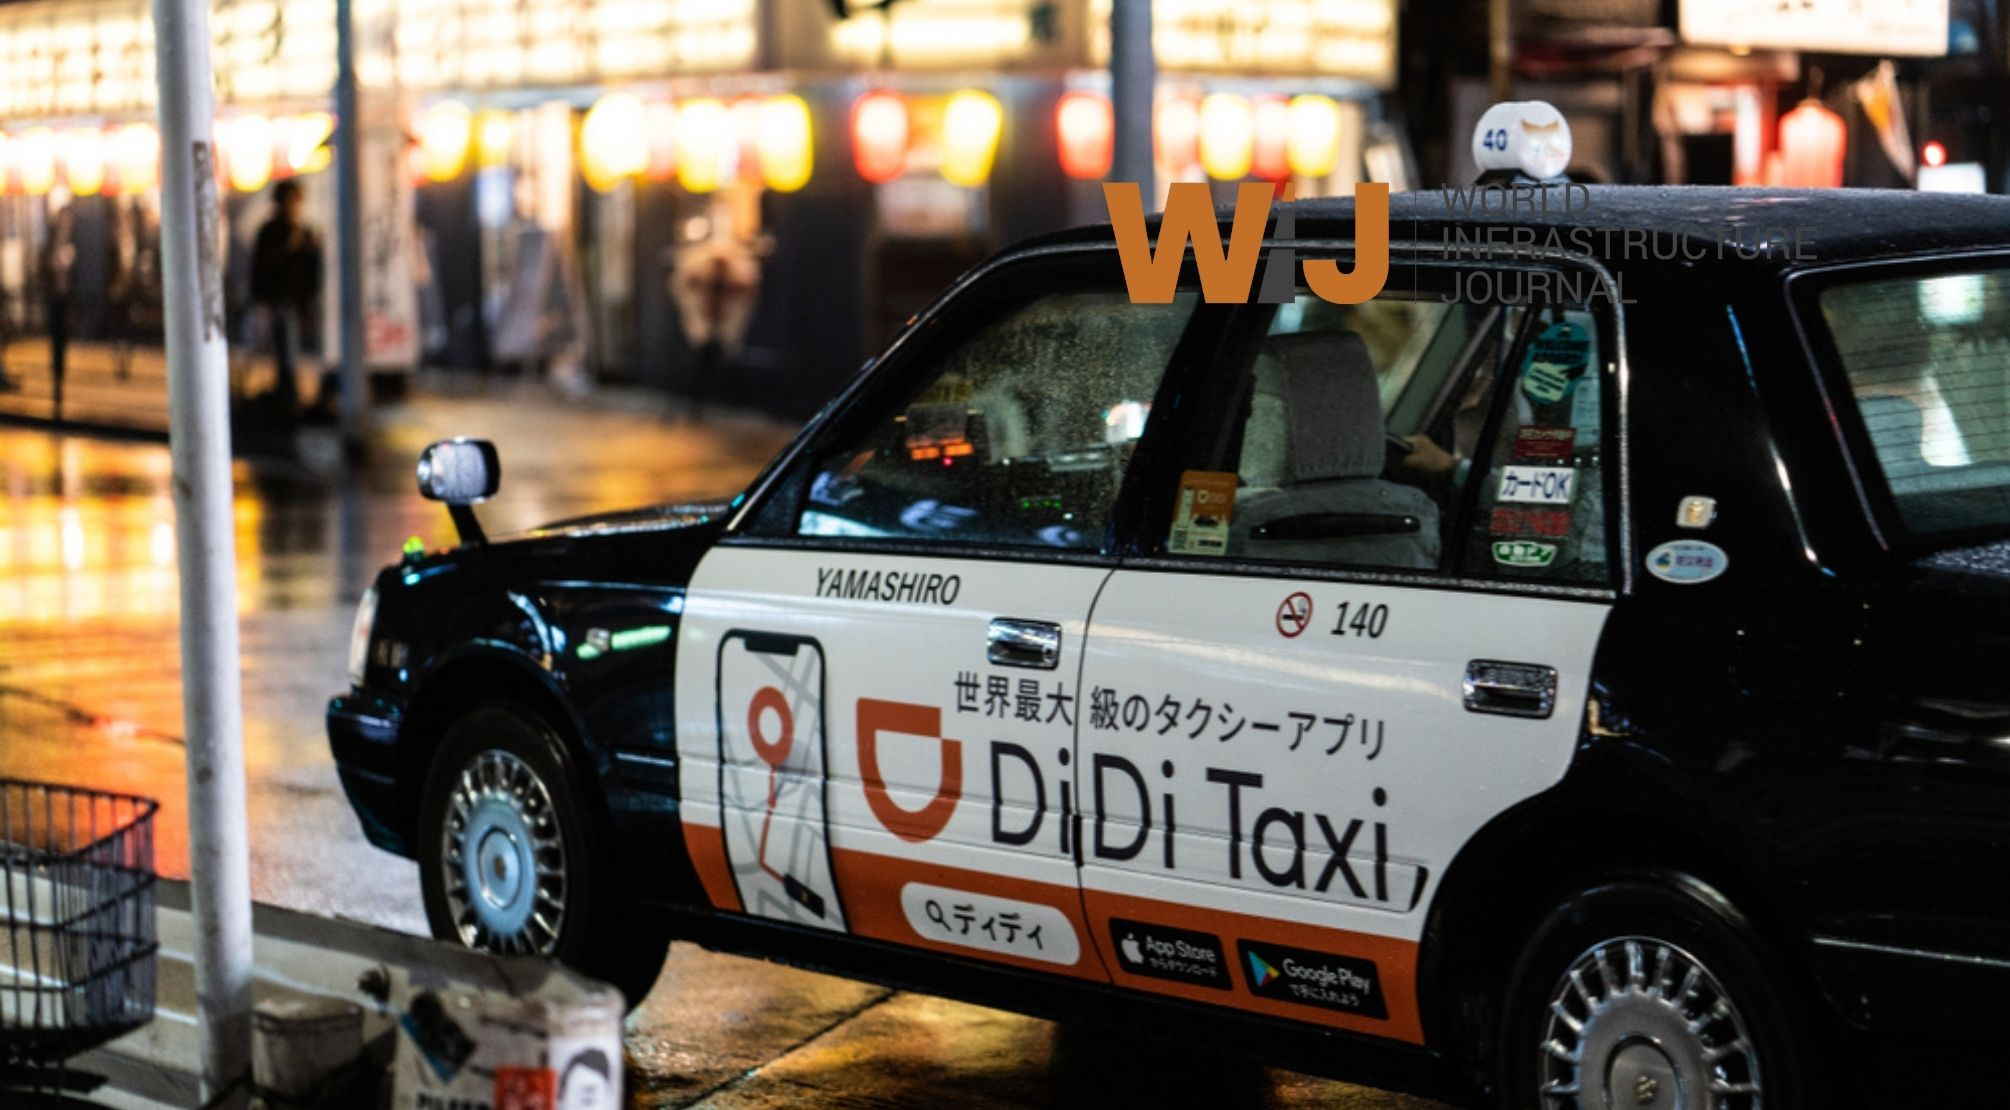 Rideshare app Didi suspends plans to expand into UK and Europe